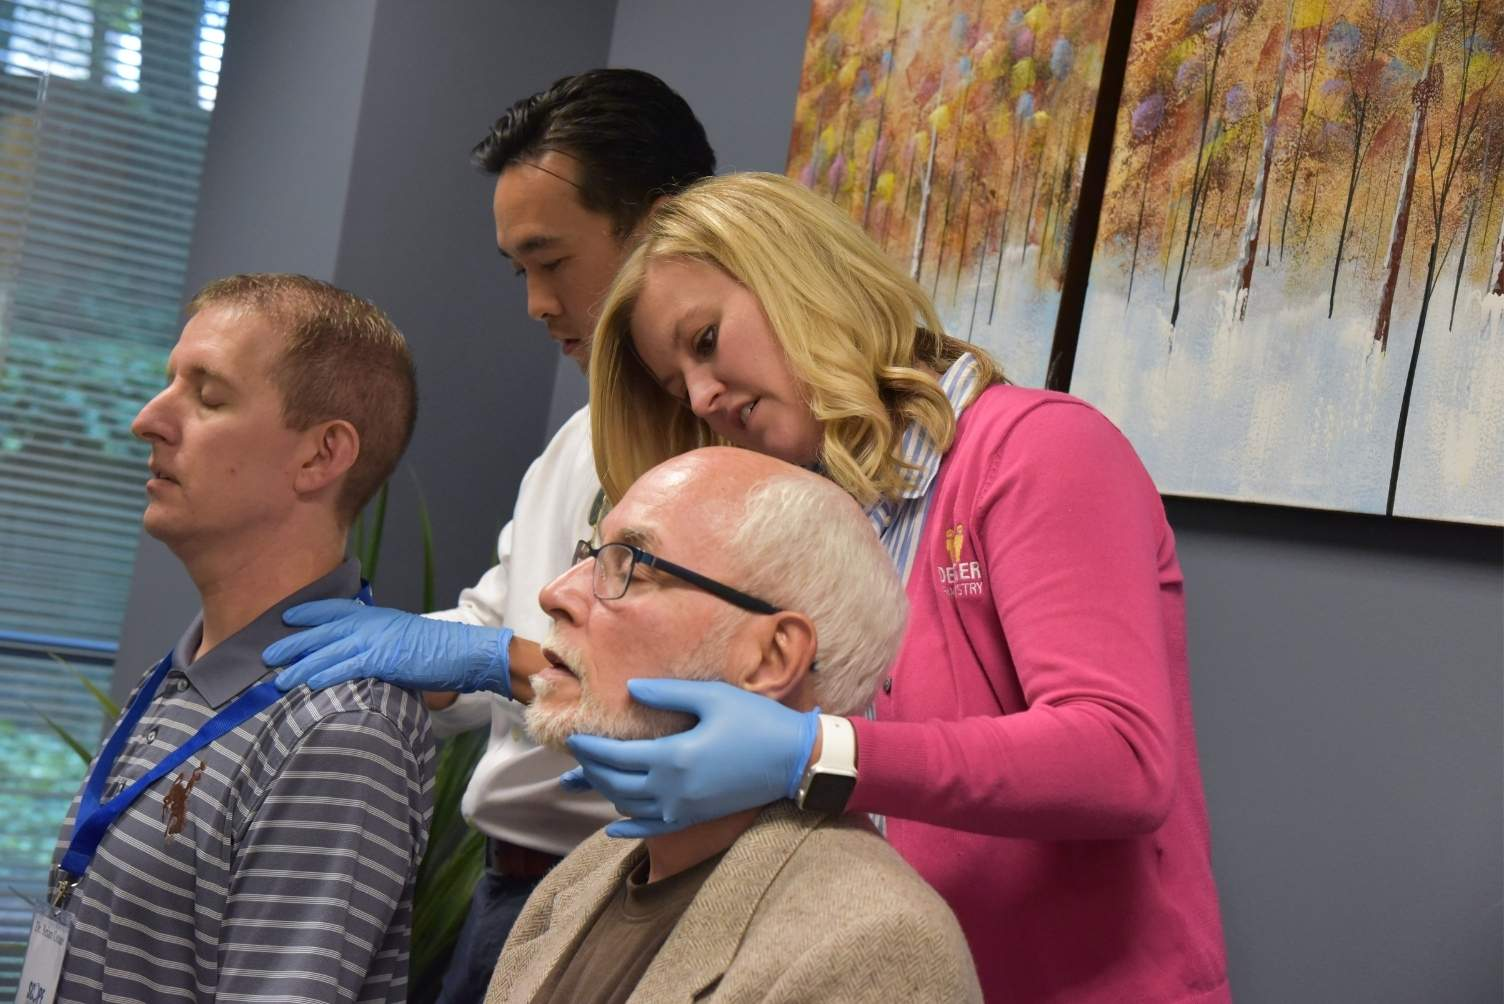 Hands-on training for TMD and craniofacial pain